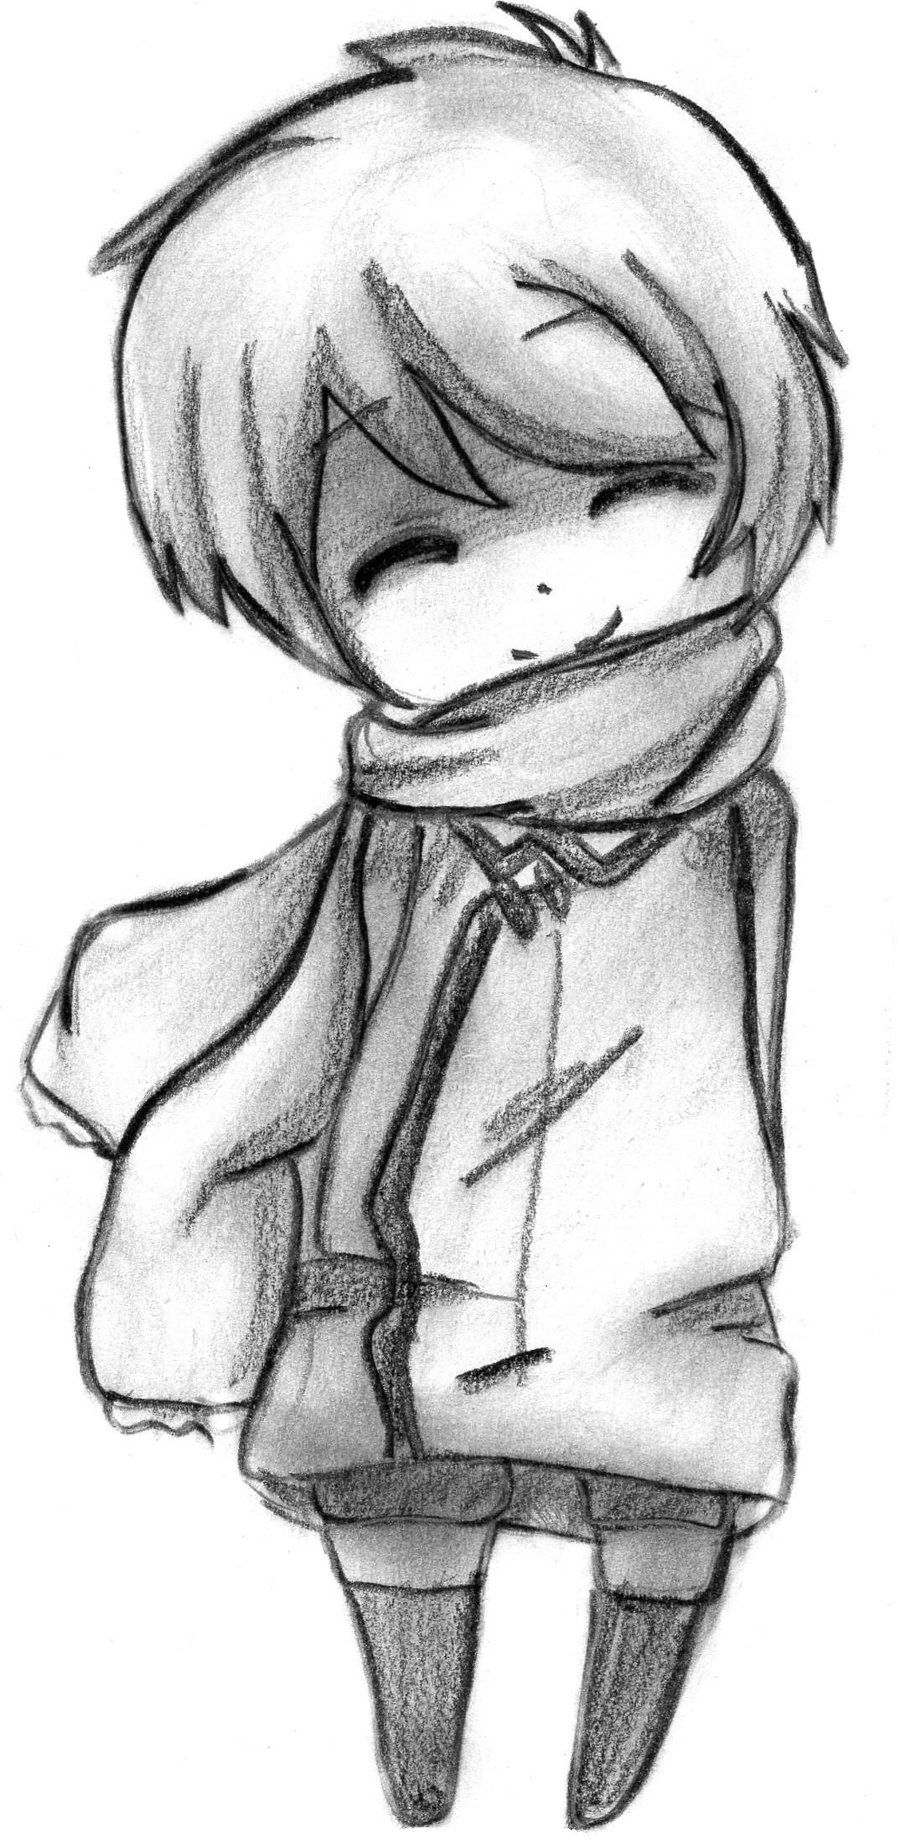 Russia Aph By Vapeyumsi Deviantart Com On Deviantart Aww Its So